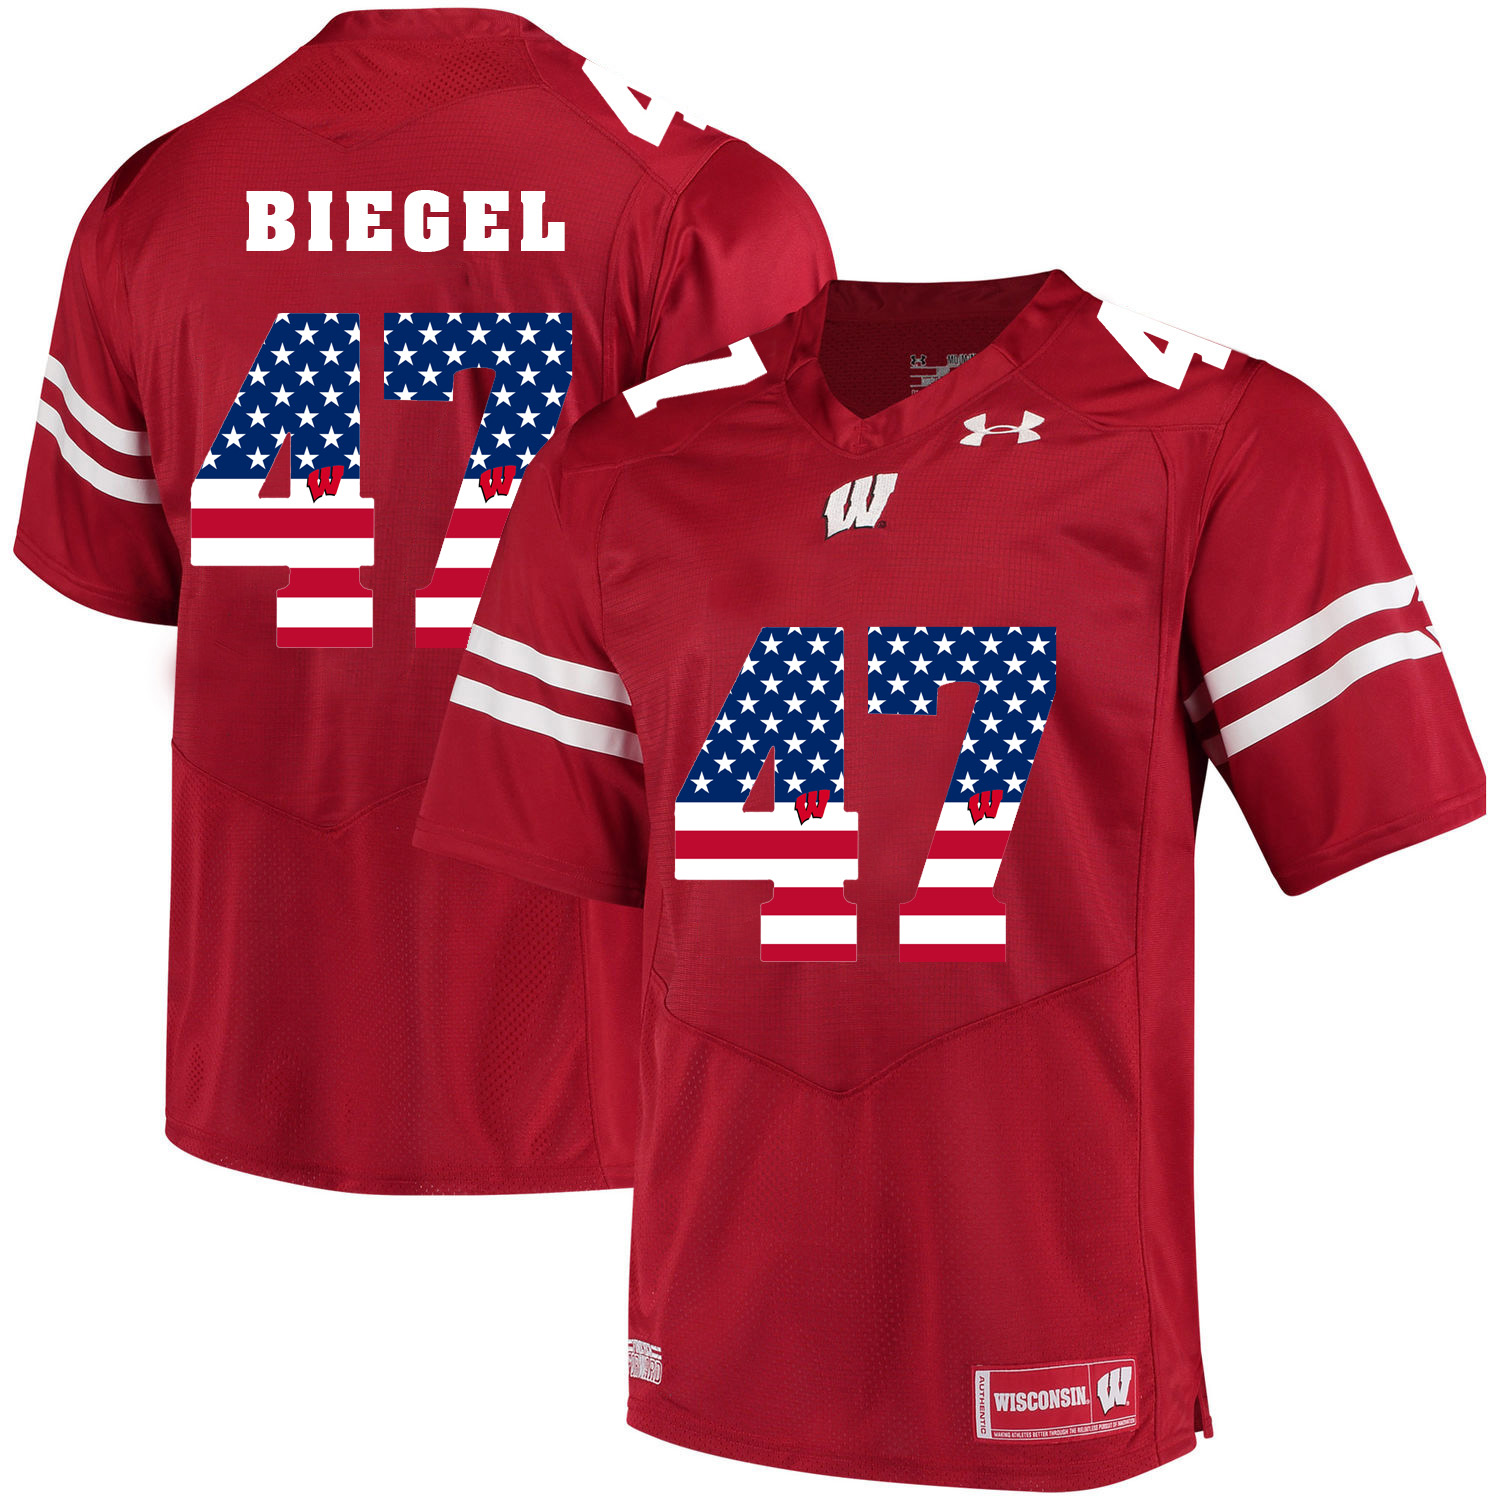 Wisconsin Badgers 47 Vince Biegel Red USA Flag College Football Jersey